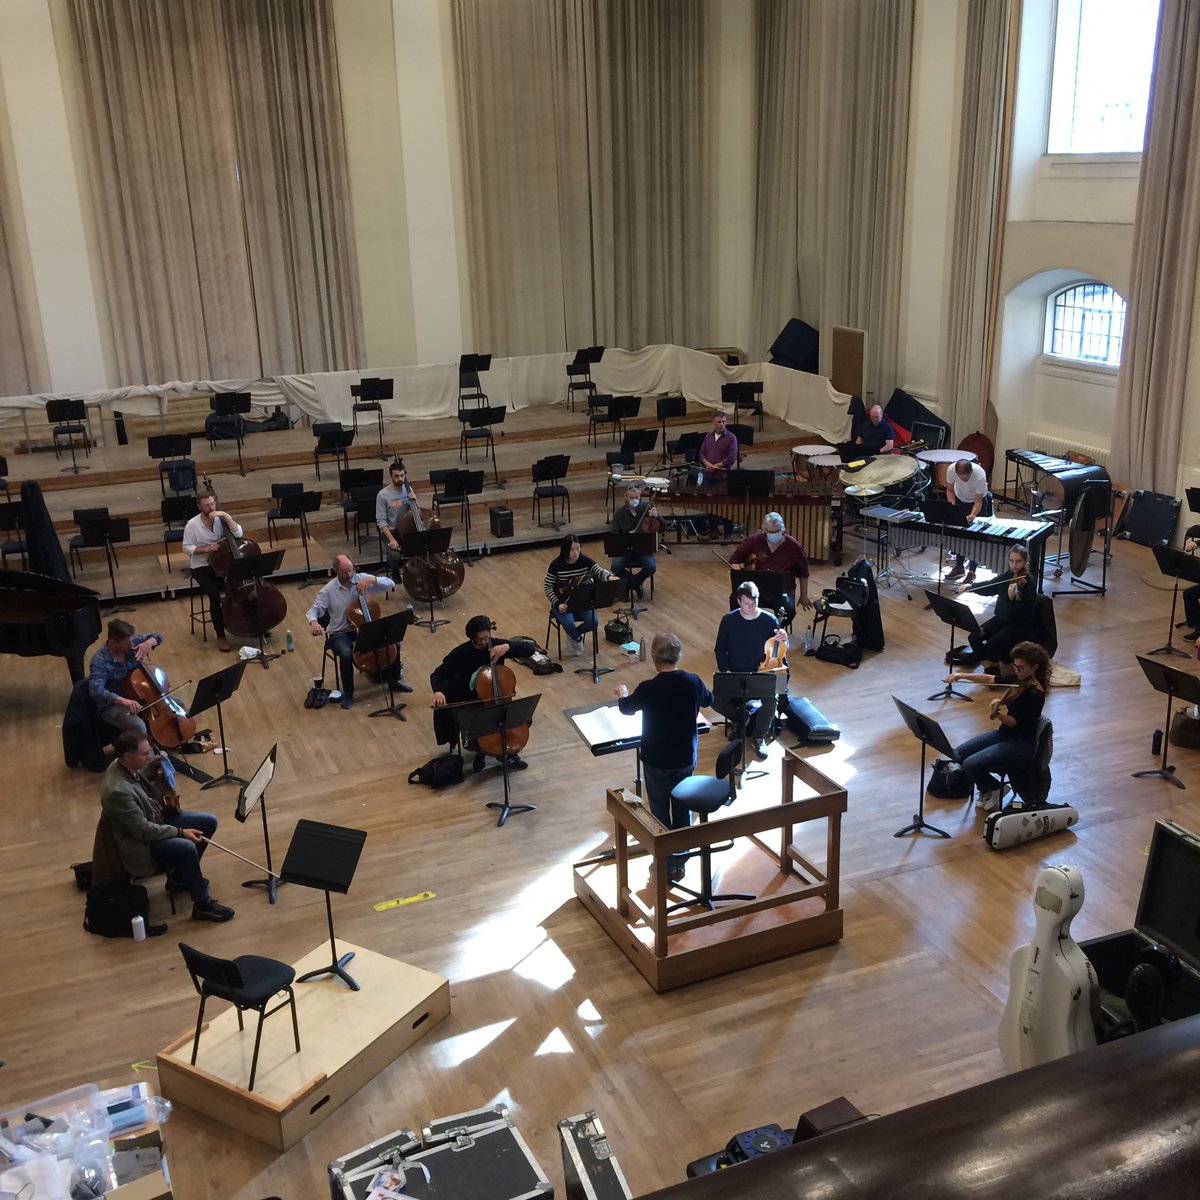 A sneak peek into rehearsals at Henry Wood Hall. 📻Tune in to @BBCRadio3 tomorrow and Friday at 7.30pm for two concerts broadcast live from @southbankcentres Royal Festival Hall. #LPO2020 #InsideOutSC